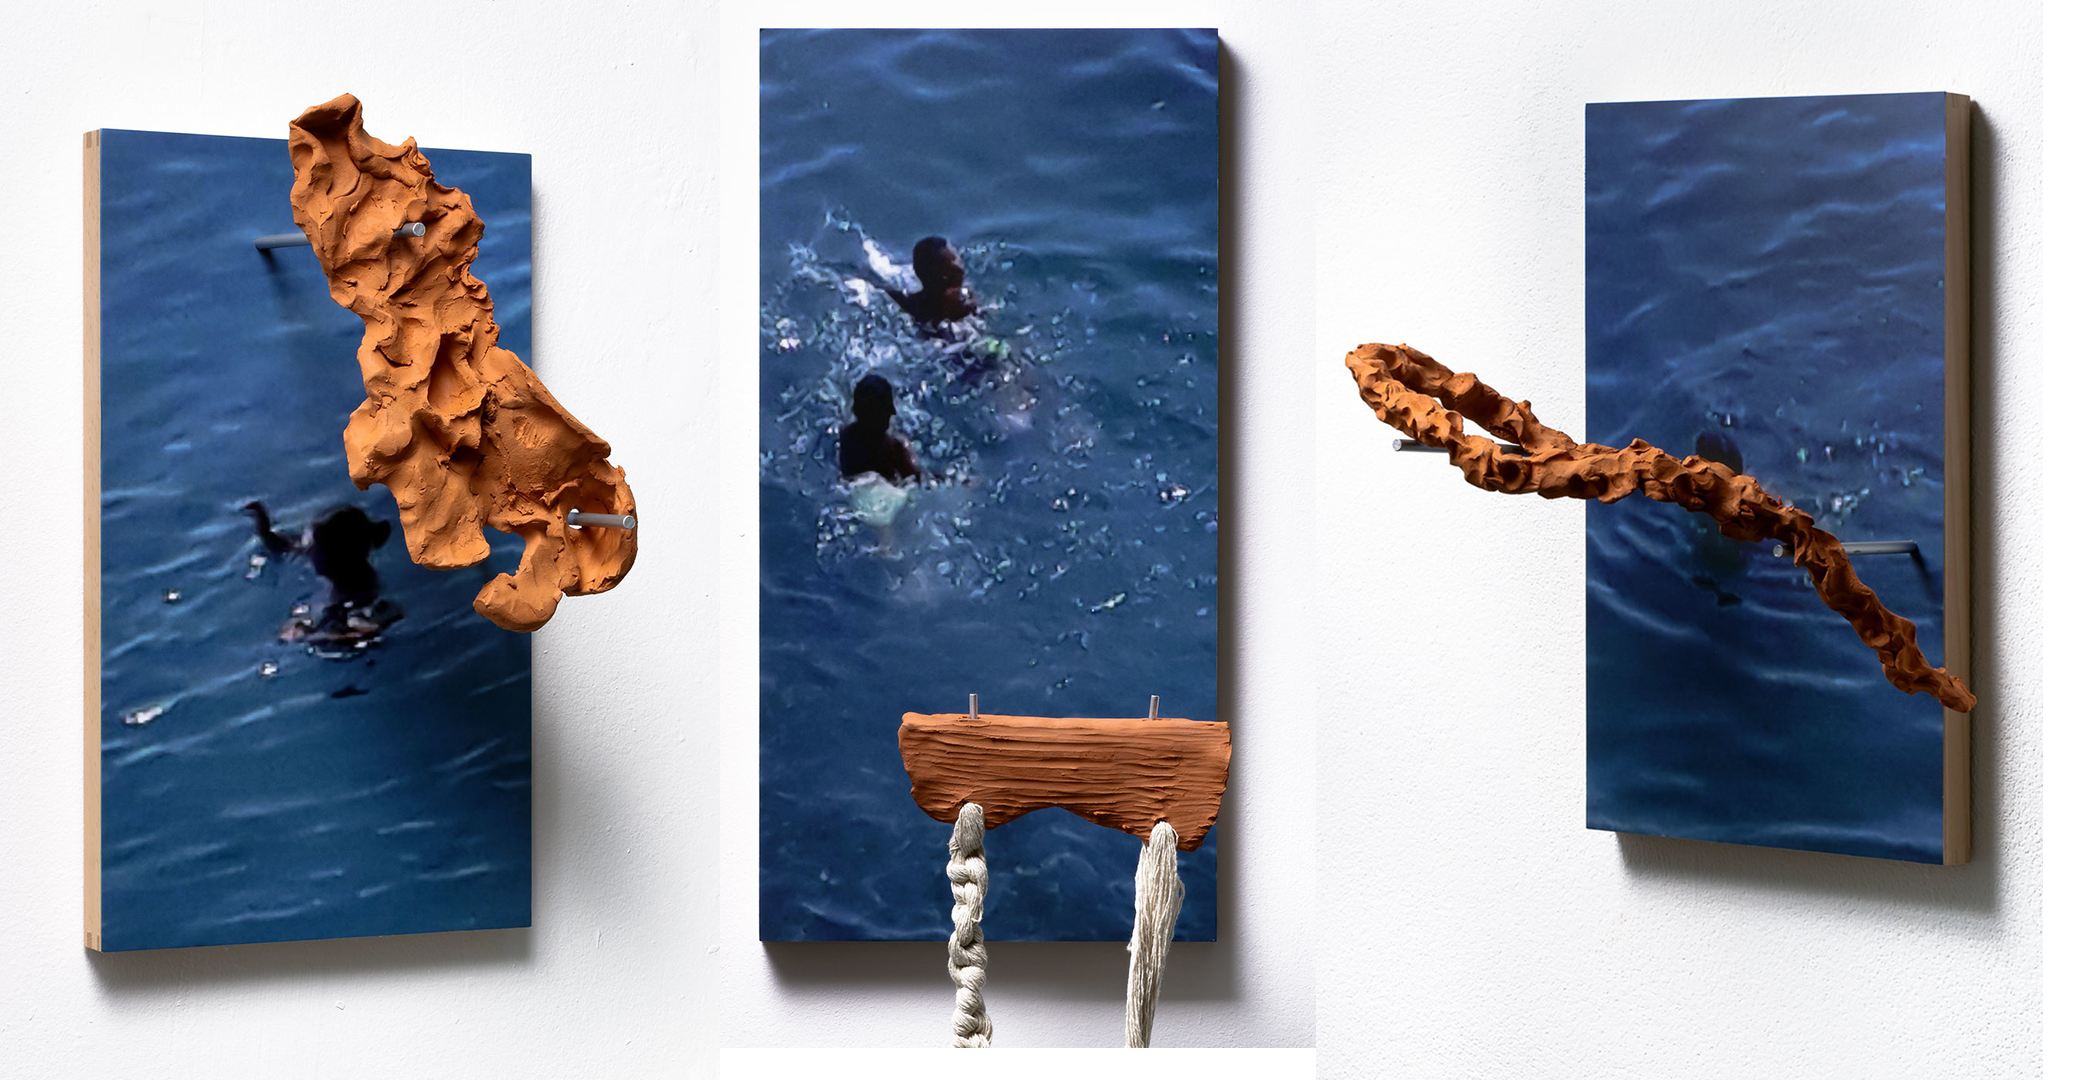 Bodies-Made-Of-Water-Series-of-7-sculptures-with-photographs-UV-Print-of-cell-phone-screen-grabs-on-wood-steel-hangers-terra-cotta-ceramics-30-x-60-cm-or-30-x-50-cm-2020-2